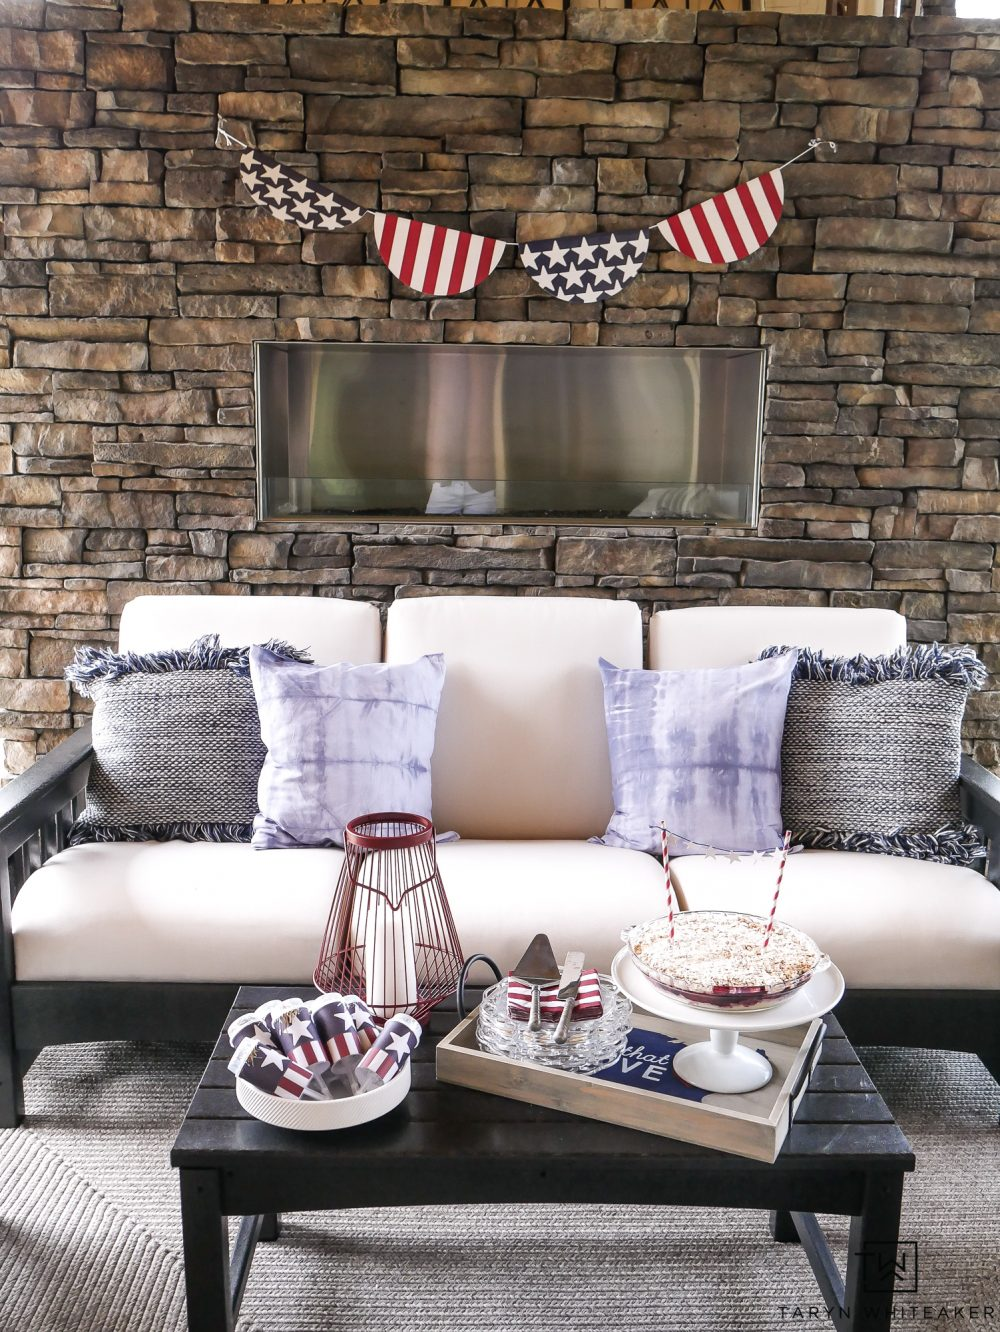 Fourth of July outdoor decorations! Love all these subtle yet festive ways to spruce your space up for the holiday!